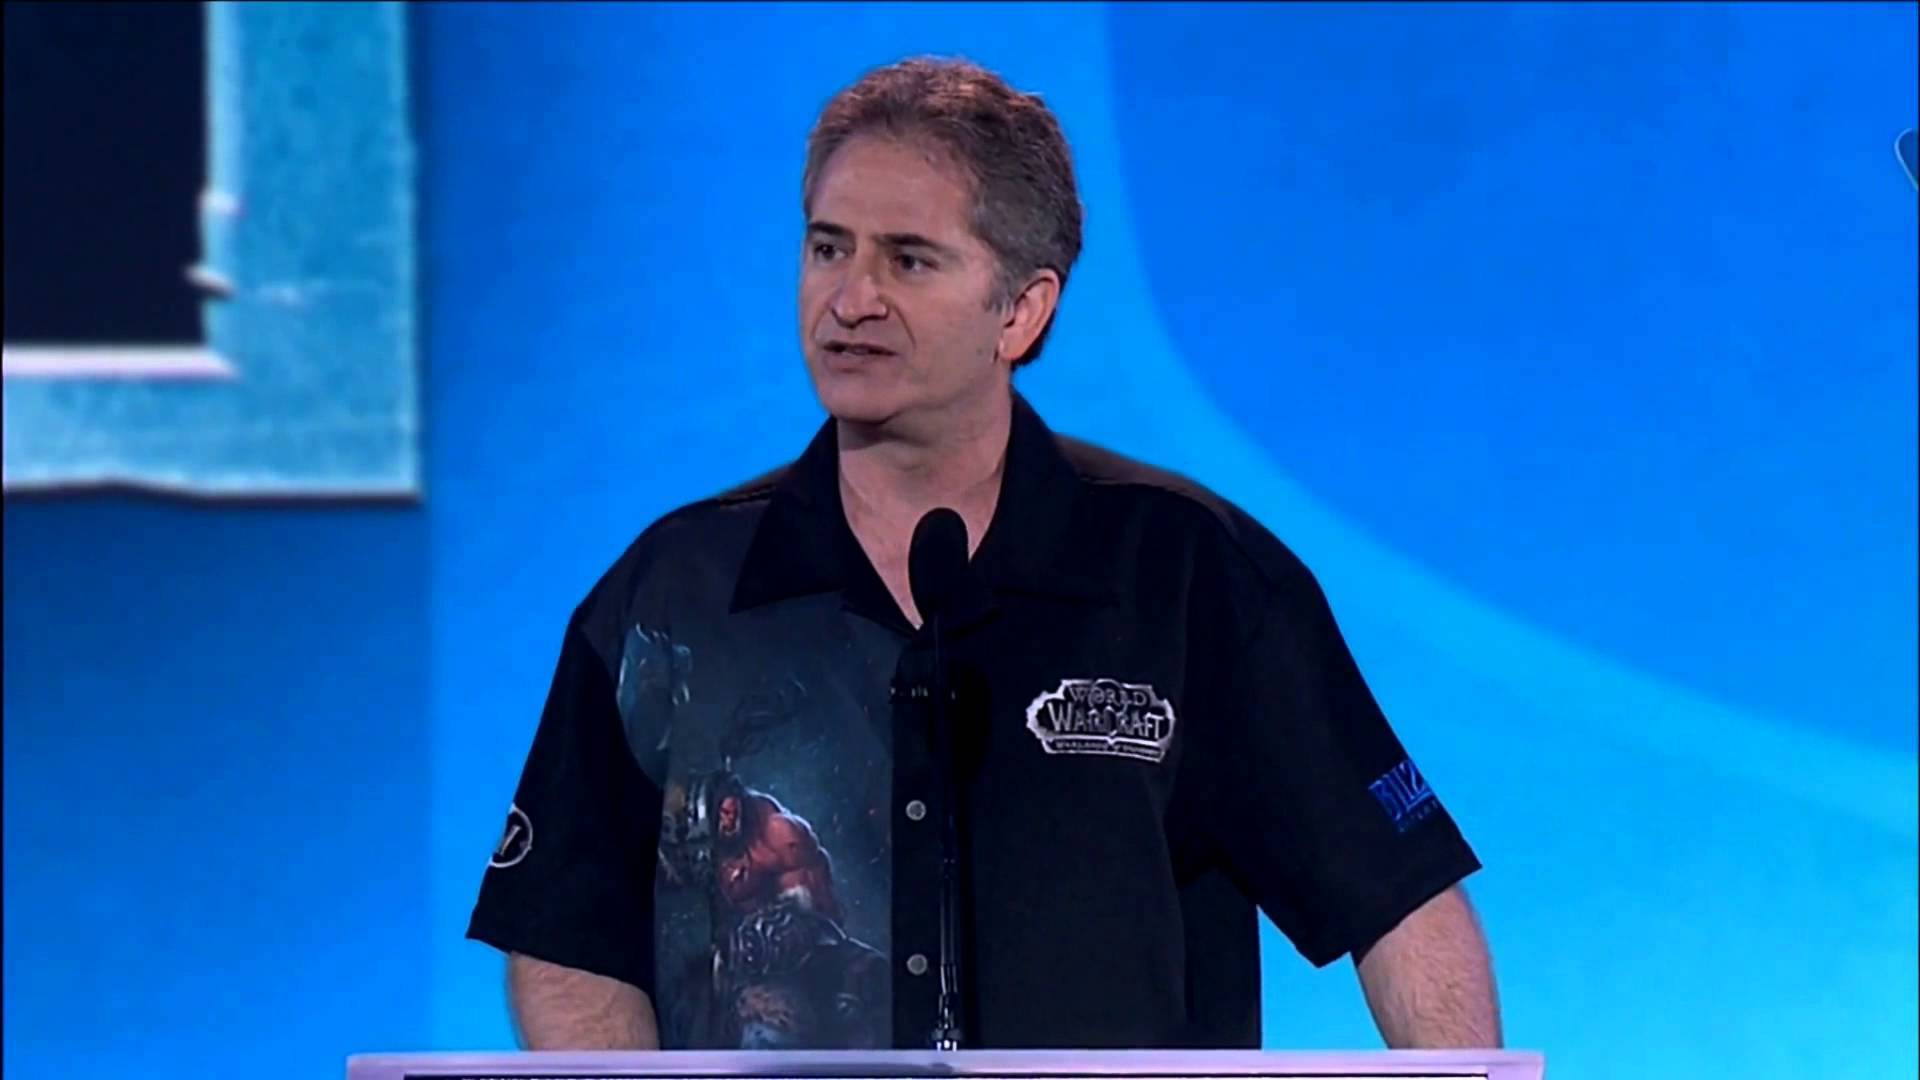 WoW Mike Morhaime CEO Blizzard